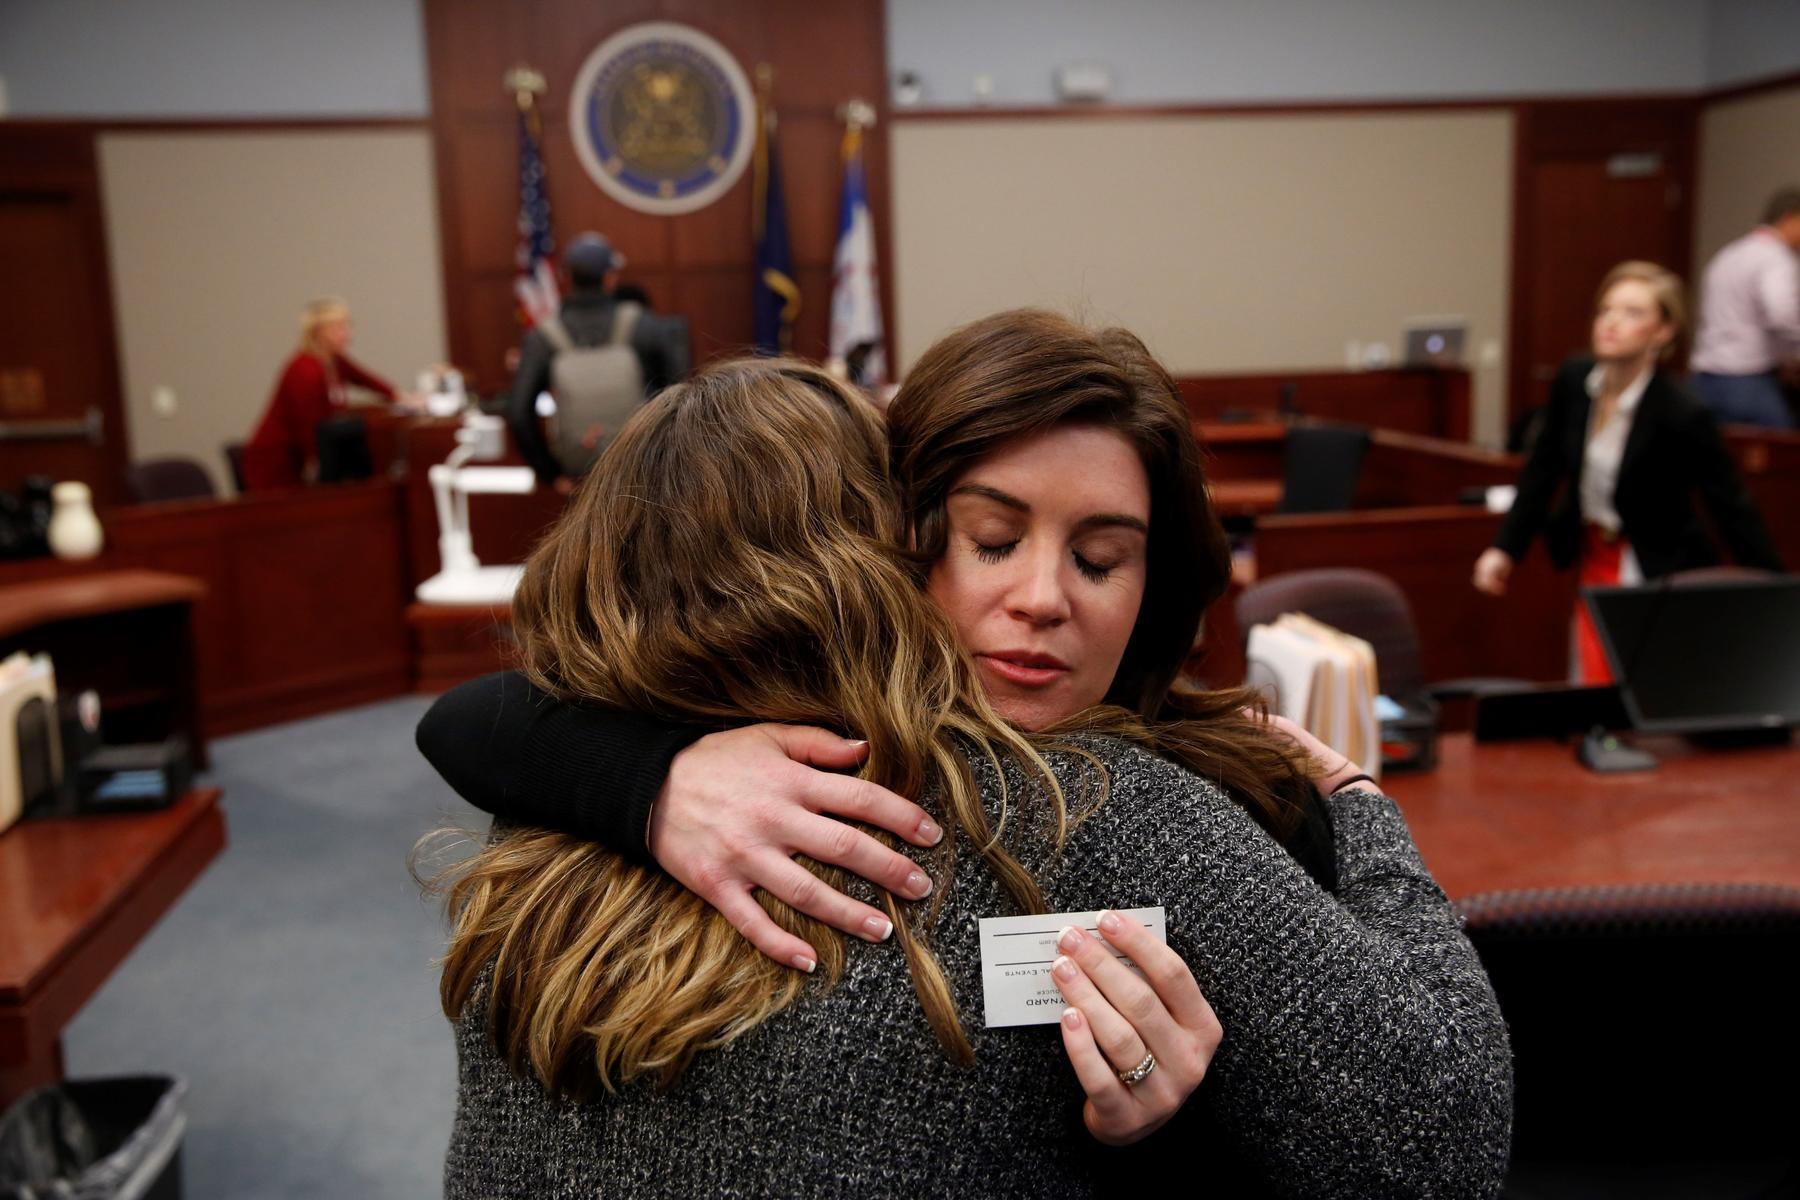 22 Quotes from the Larry Nassar Trial That Give Us Hope